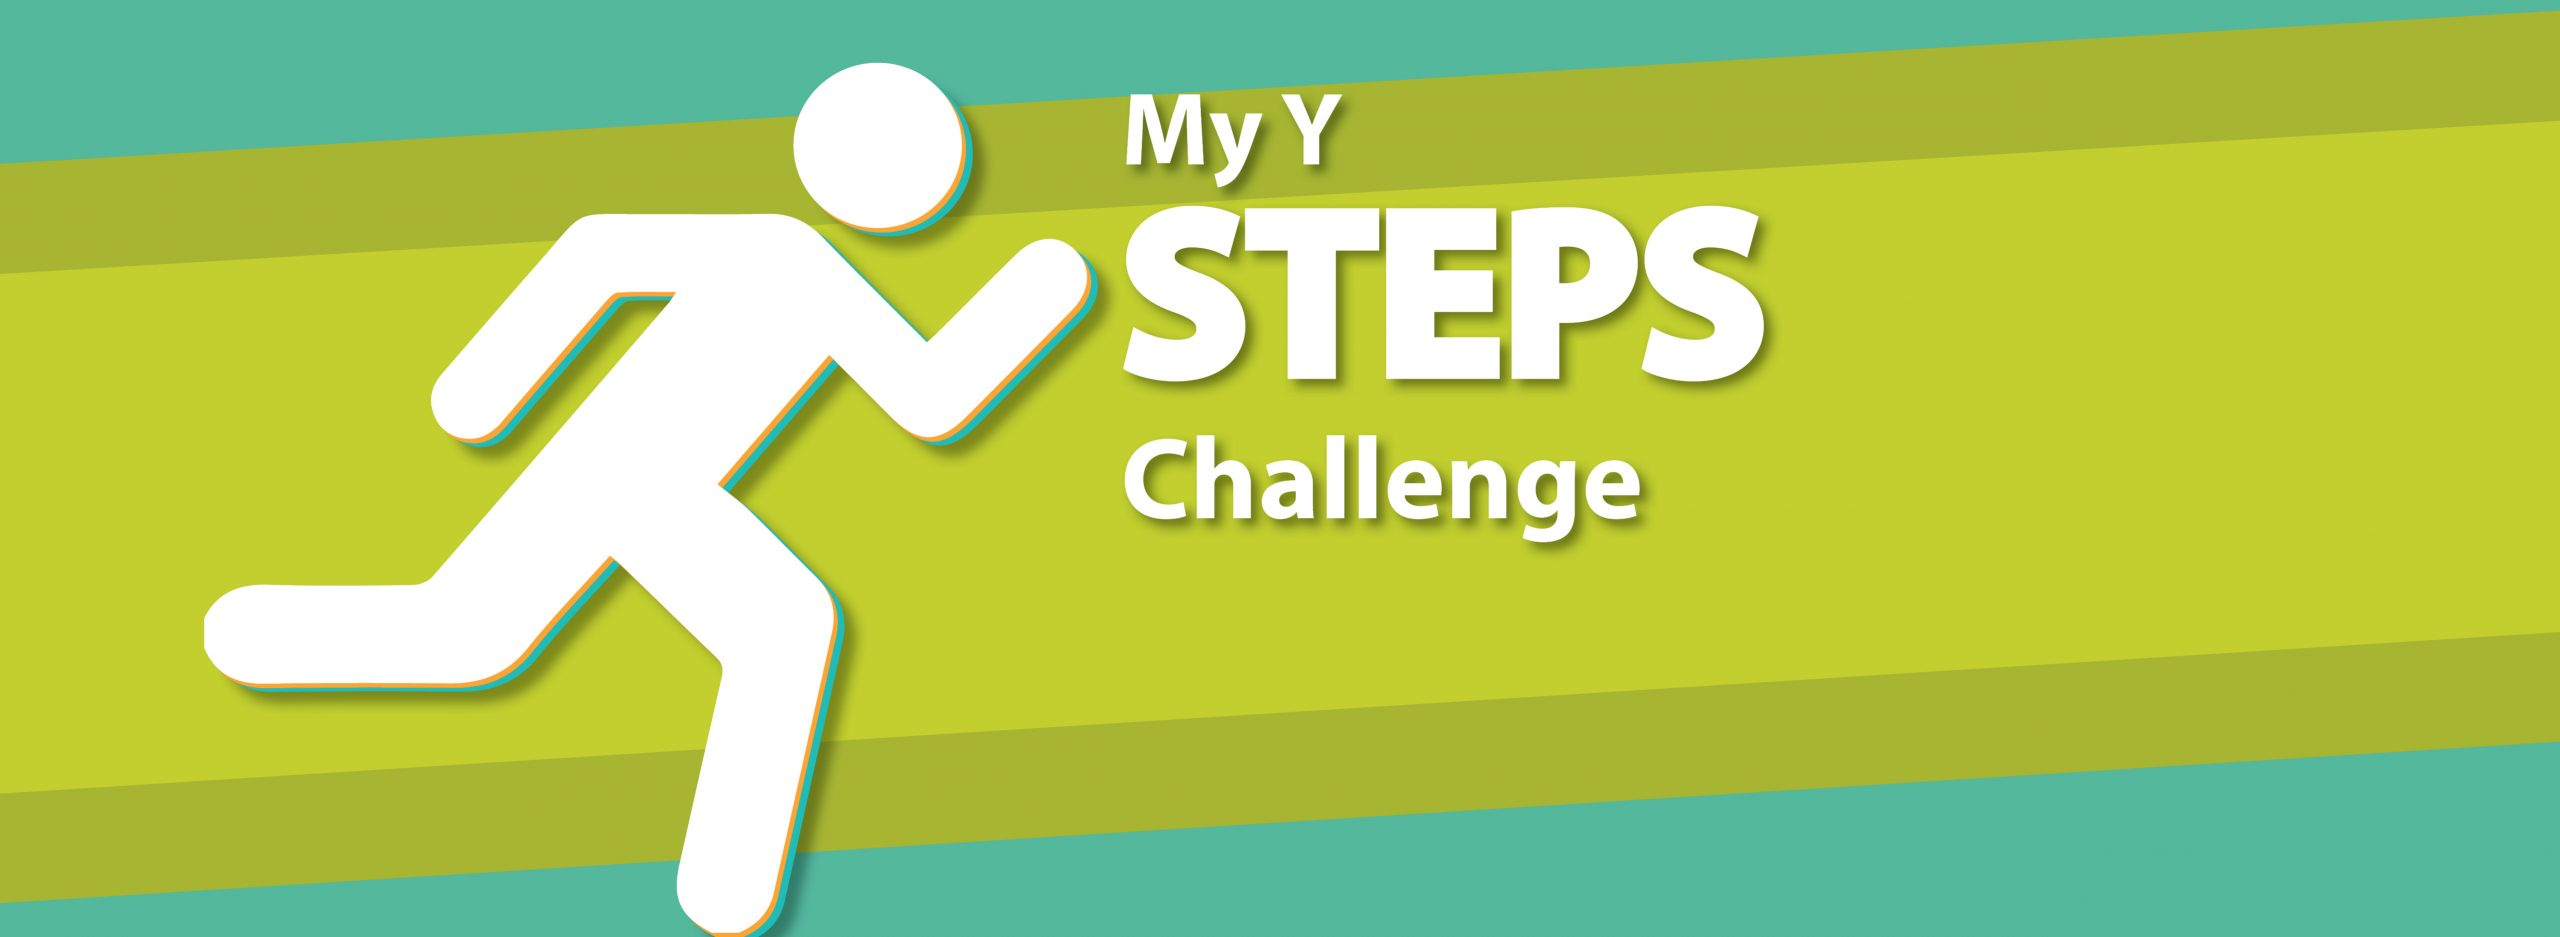 My Y Steps Challenge